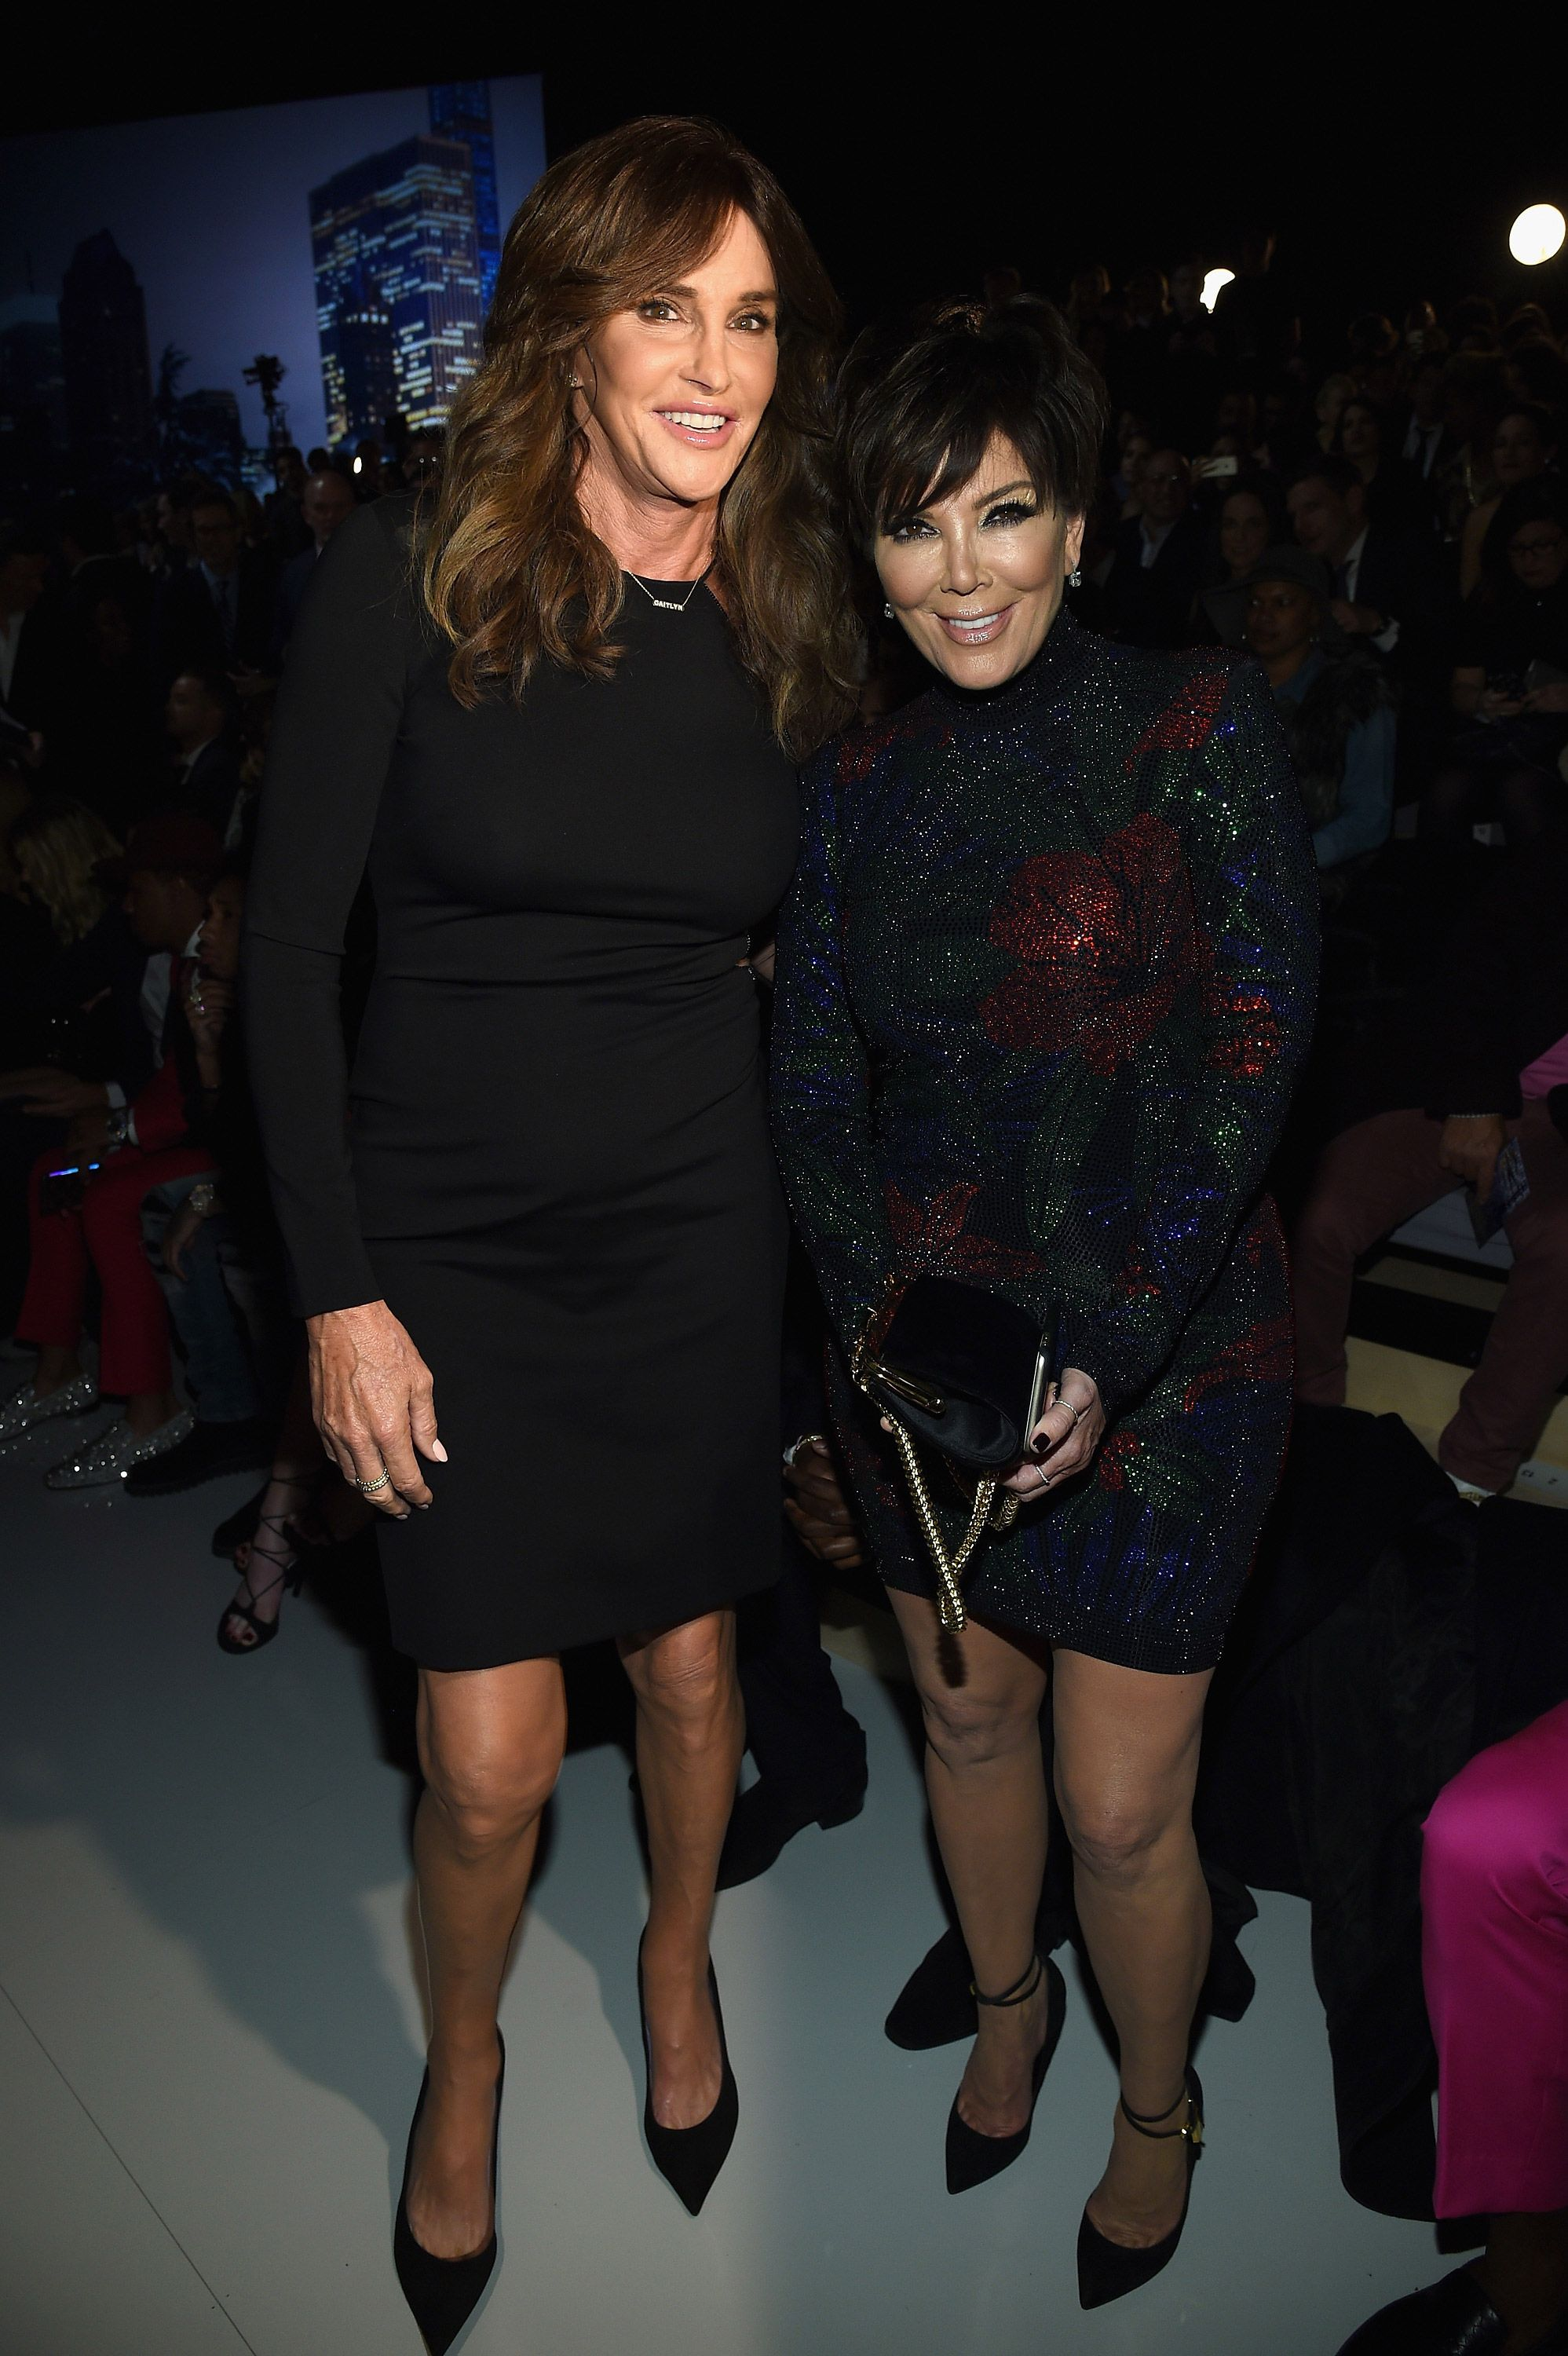 Kris Jenner Refuses to Call Caitlyn Jenner By Her New Name